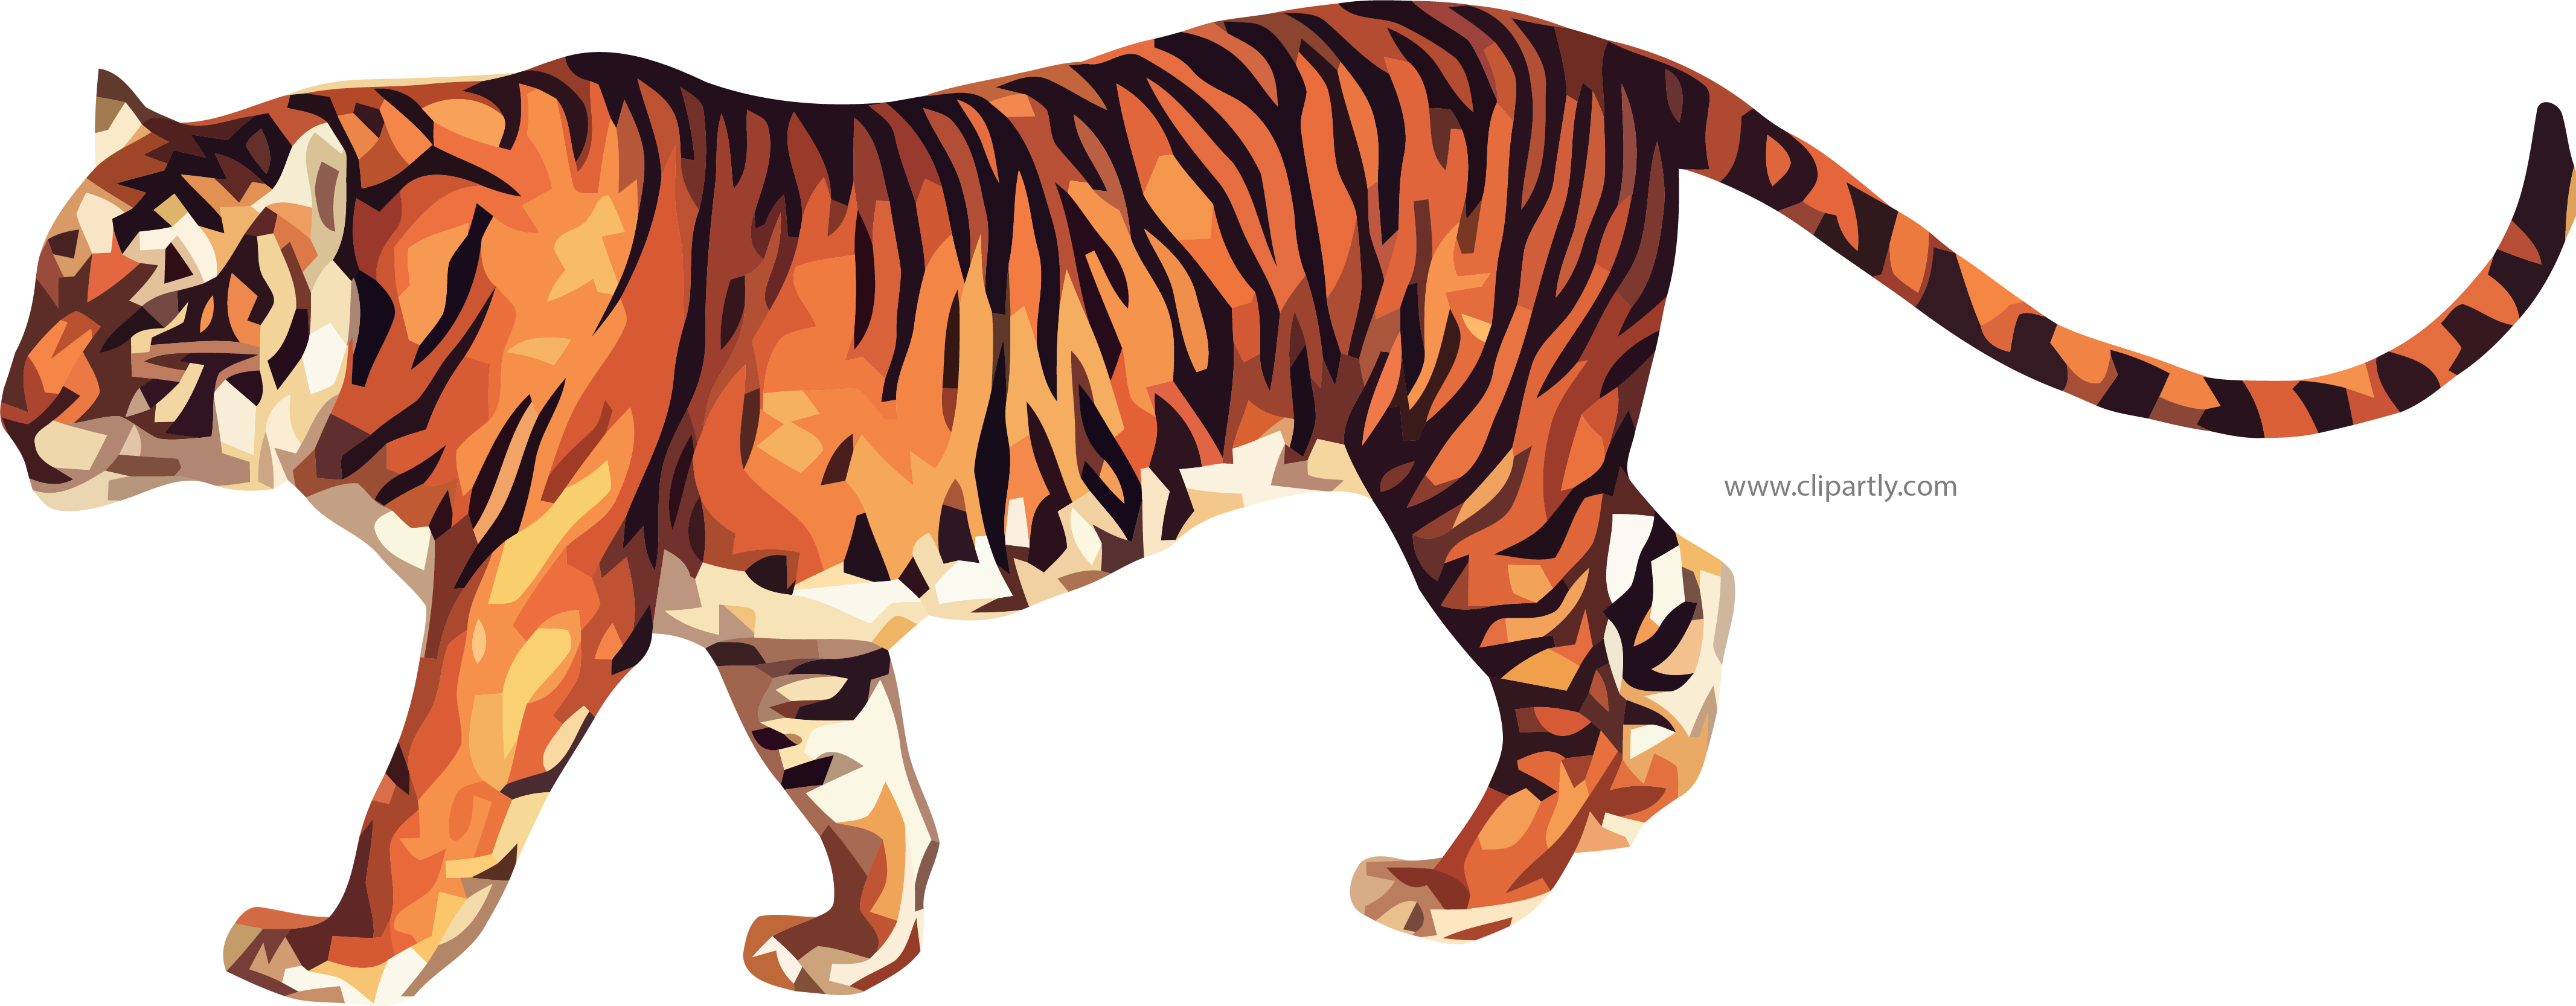 True png image www. Clipart tiger real